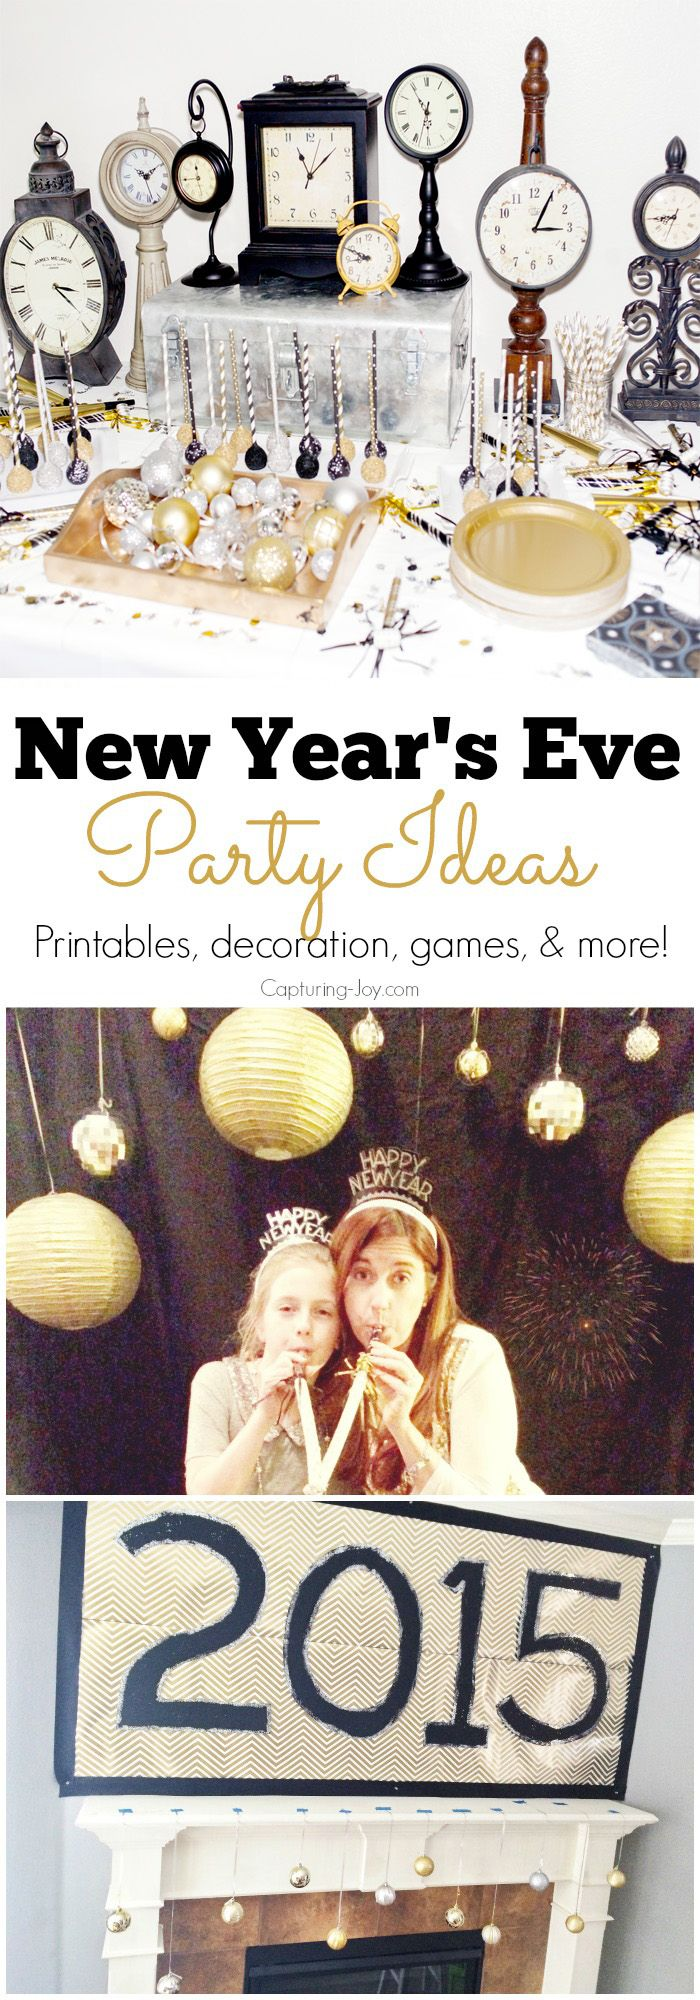 New Years Eve Party Ideas with prints games decorations